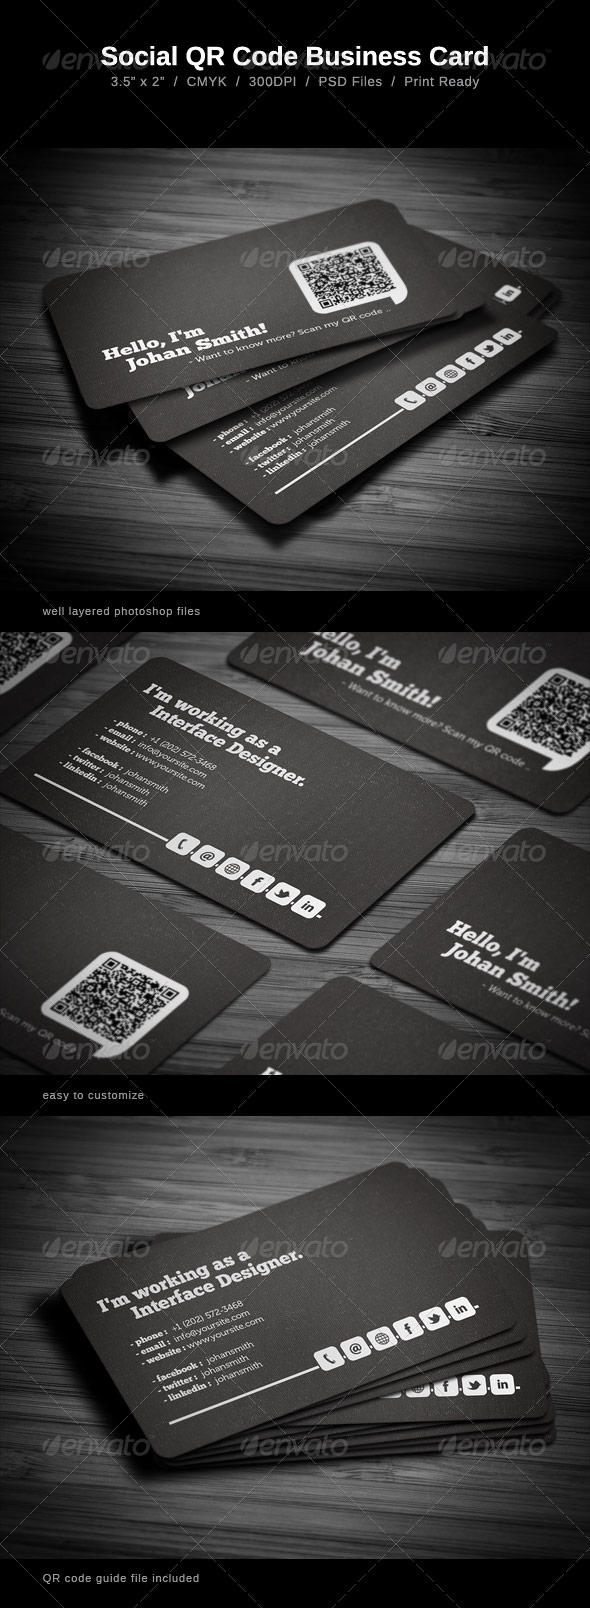 5 noteworthy back of business cards ideas business card qr back of card template wajeb Image collections